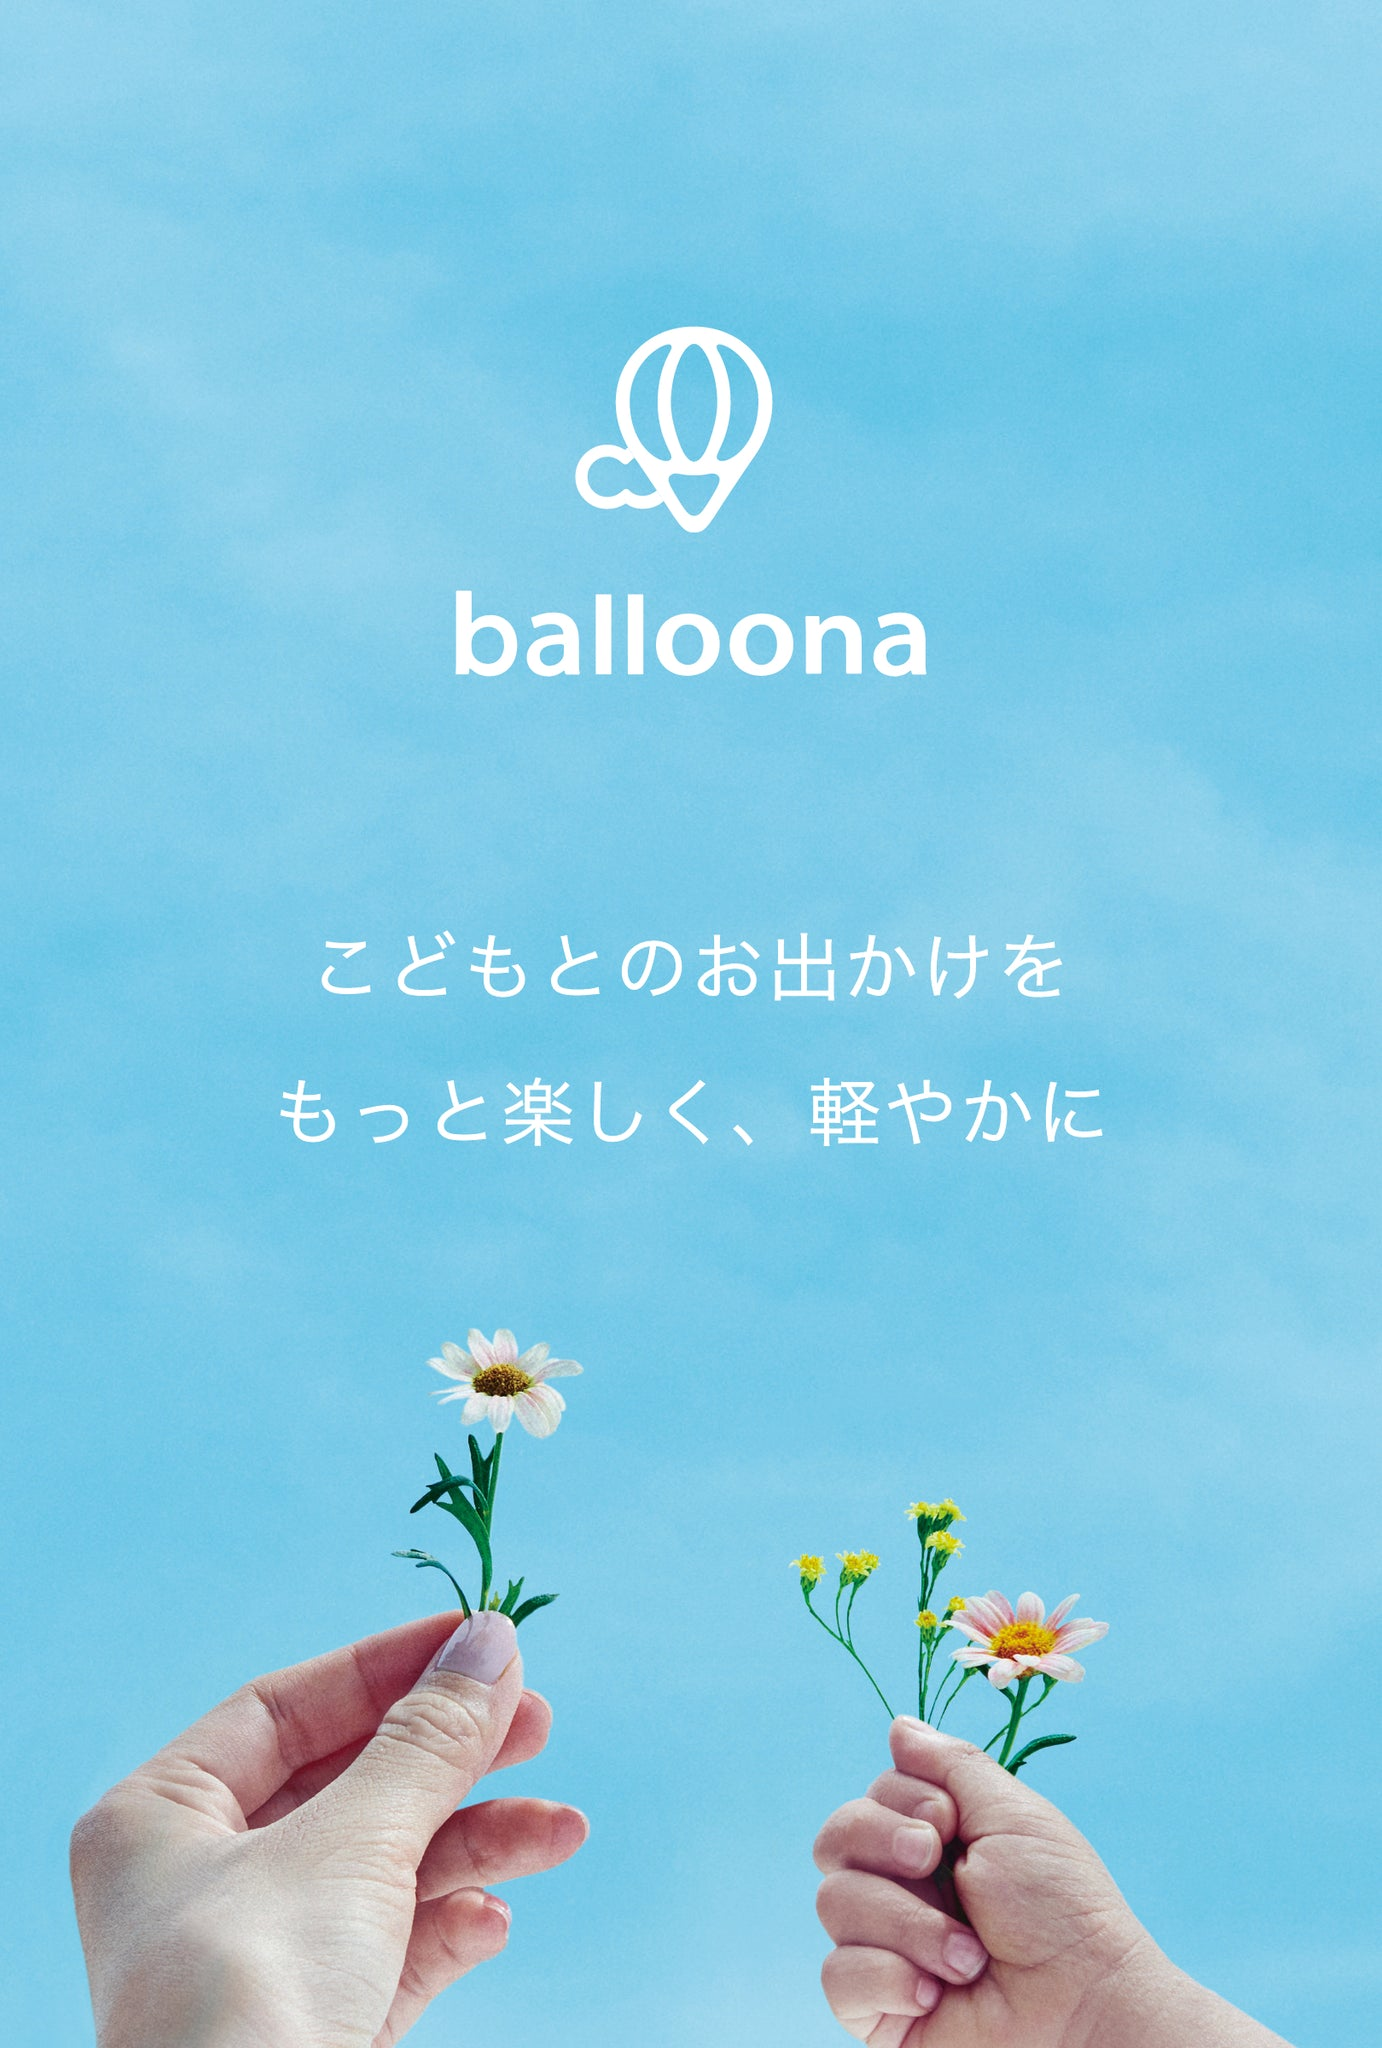 about balloona